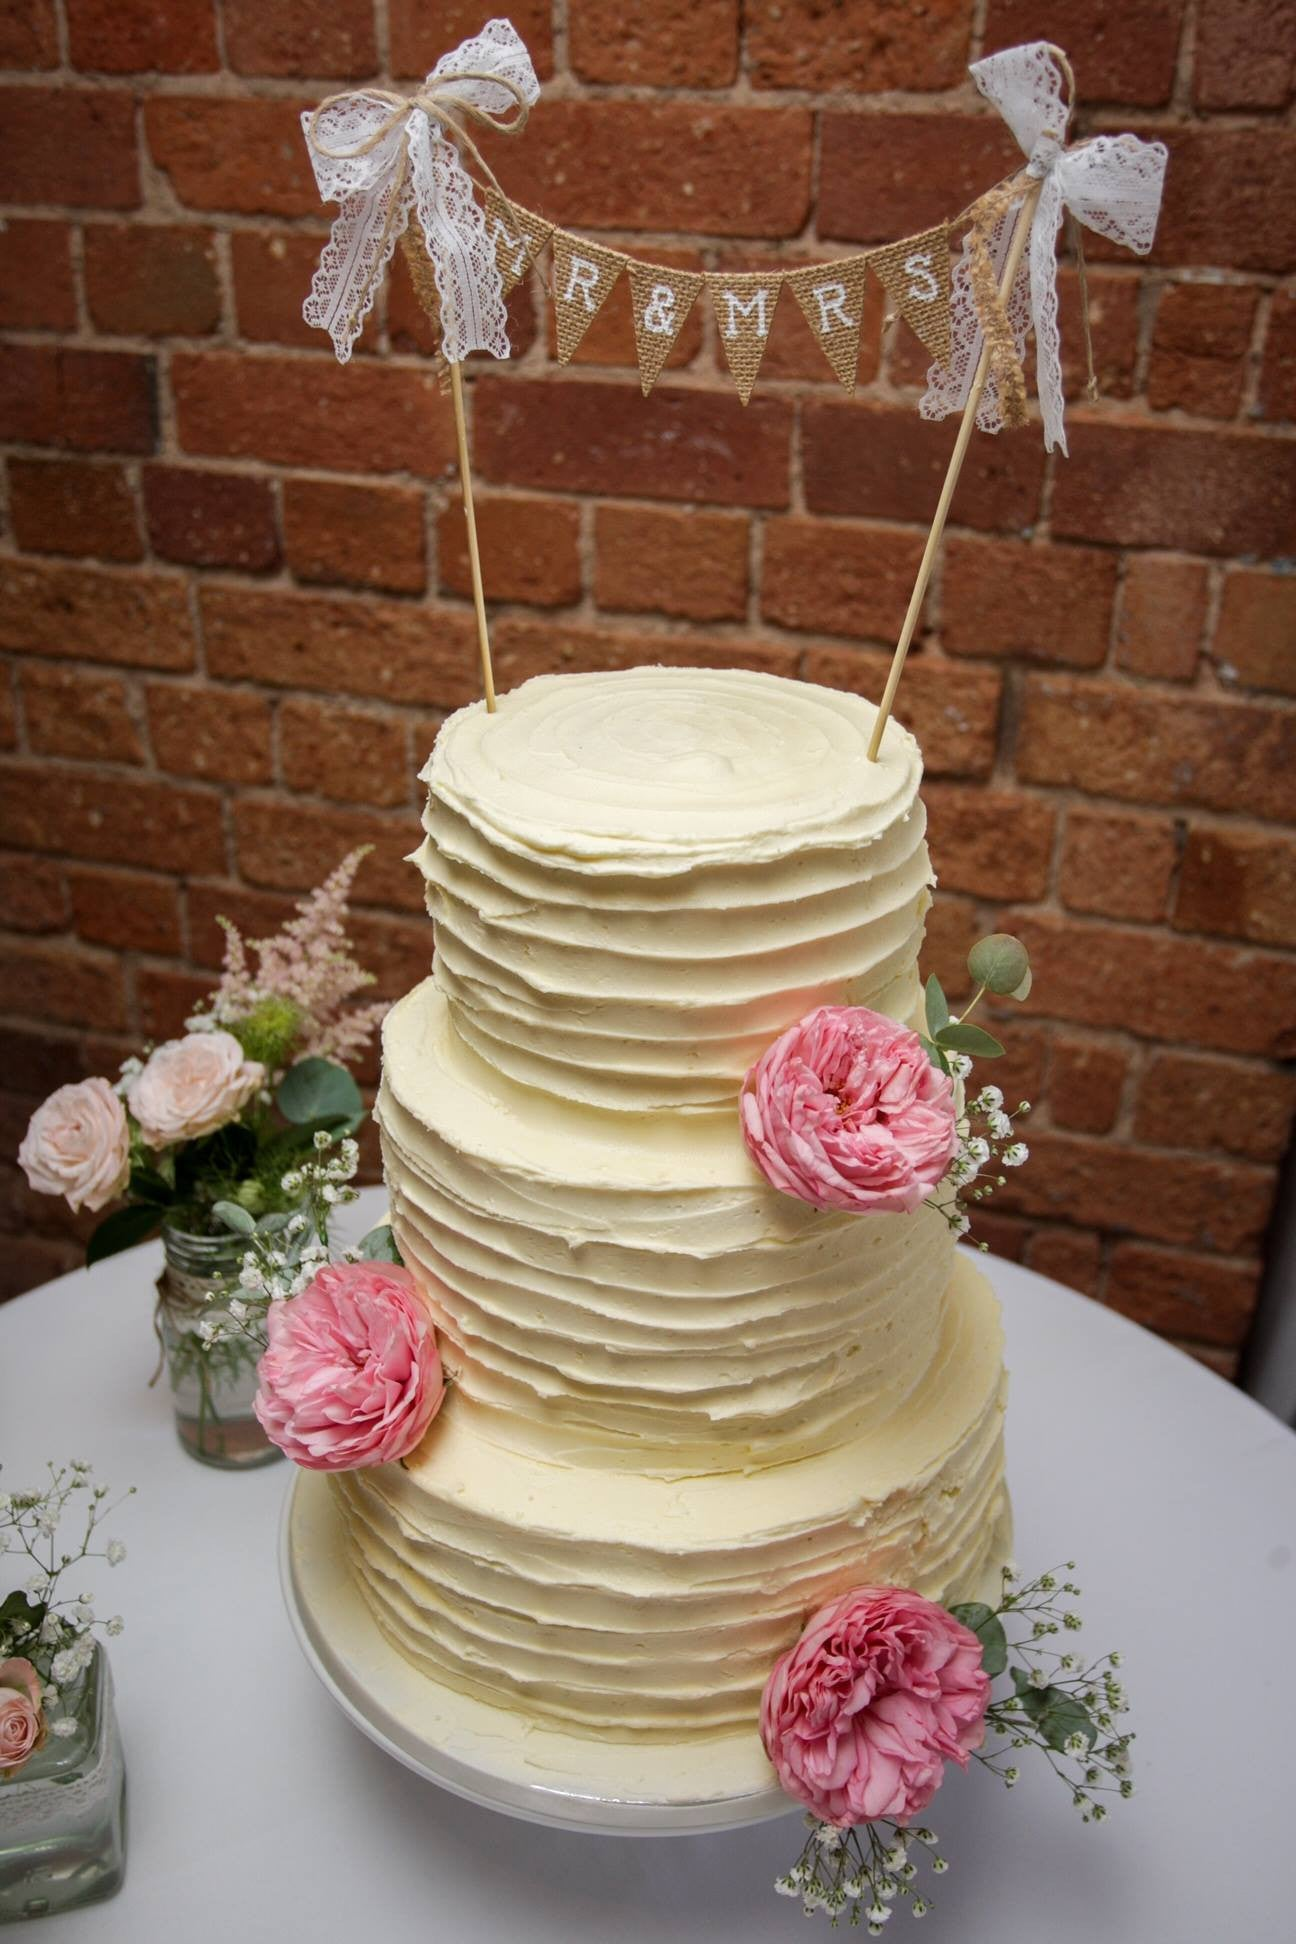 Natural style wedding cake with pink Peony decoration.